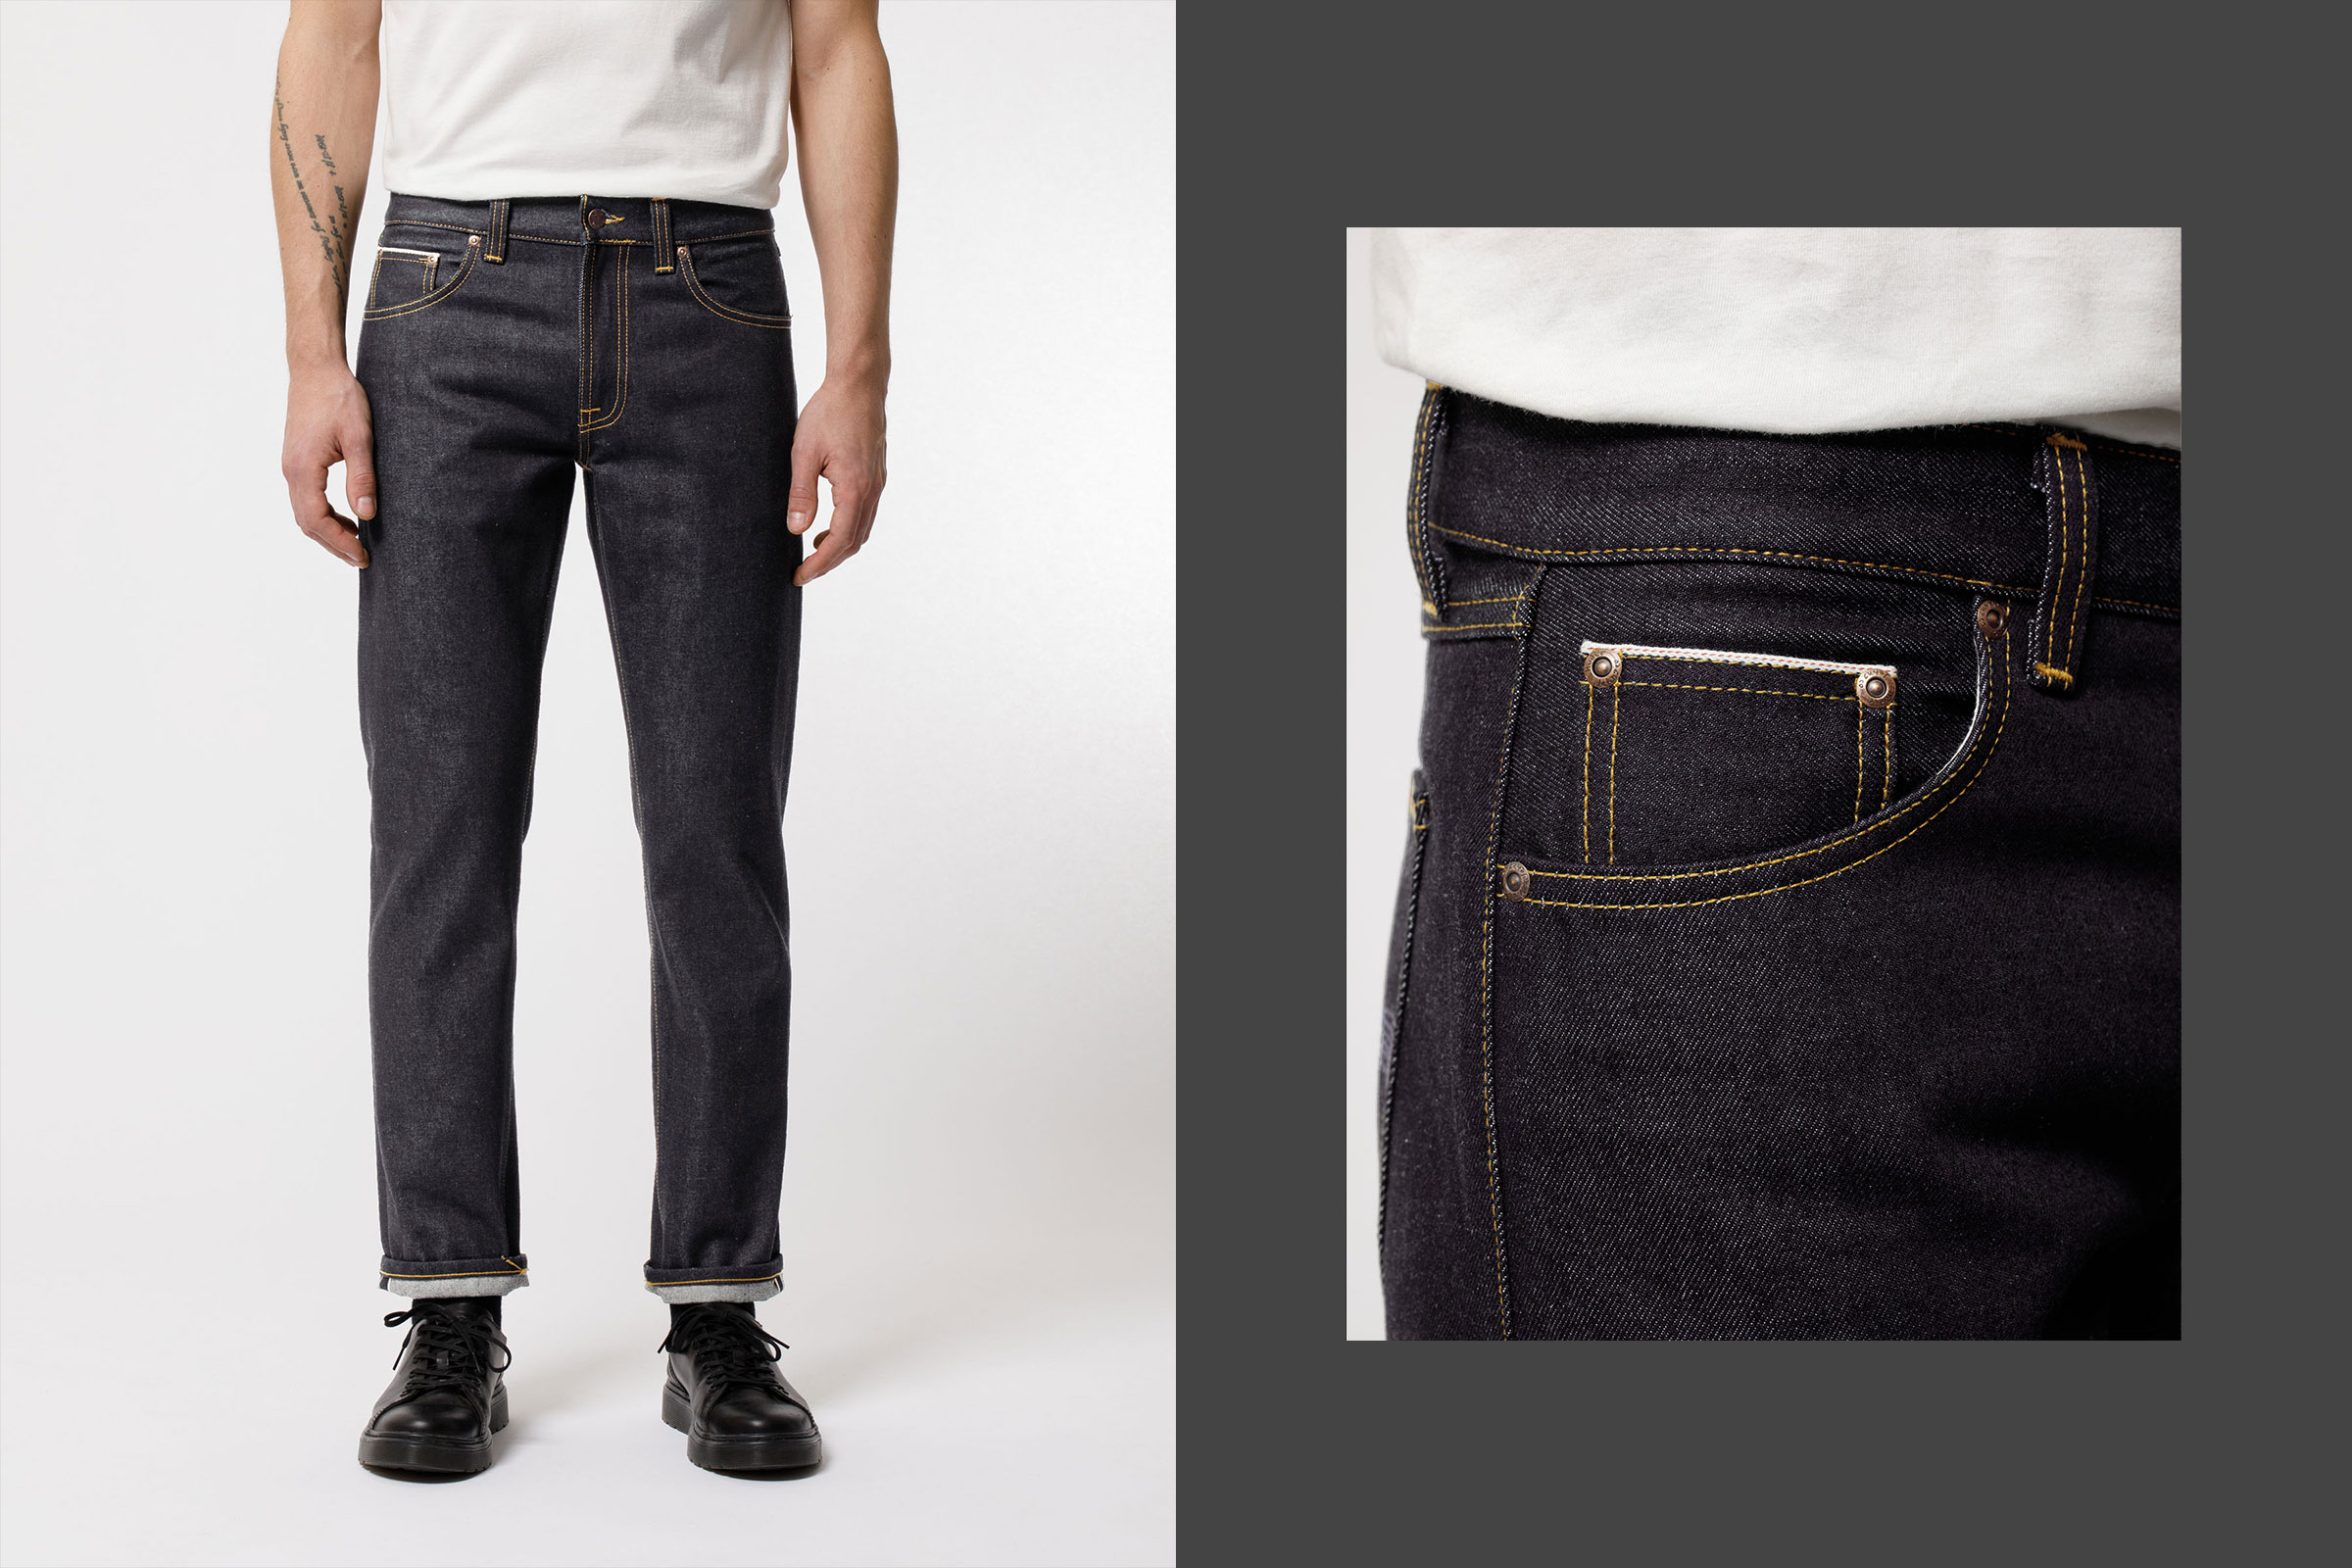 Nudie Jeans Co - How to care for denim